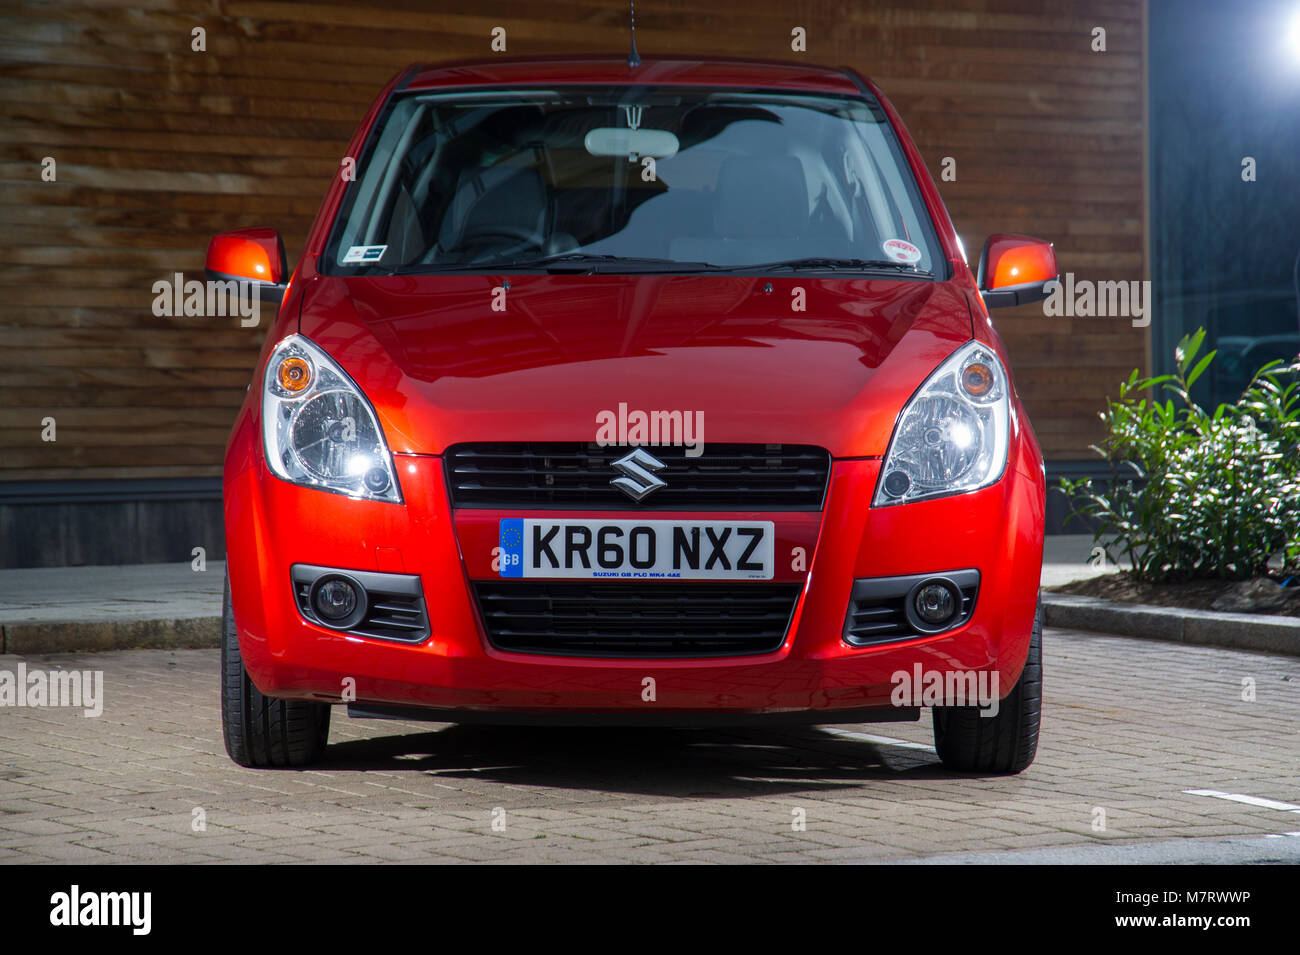 2011 Suzuki Splash City Auto Stockbild